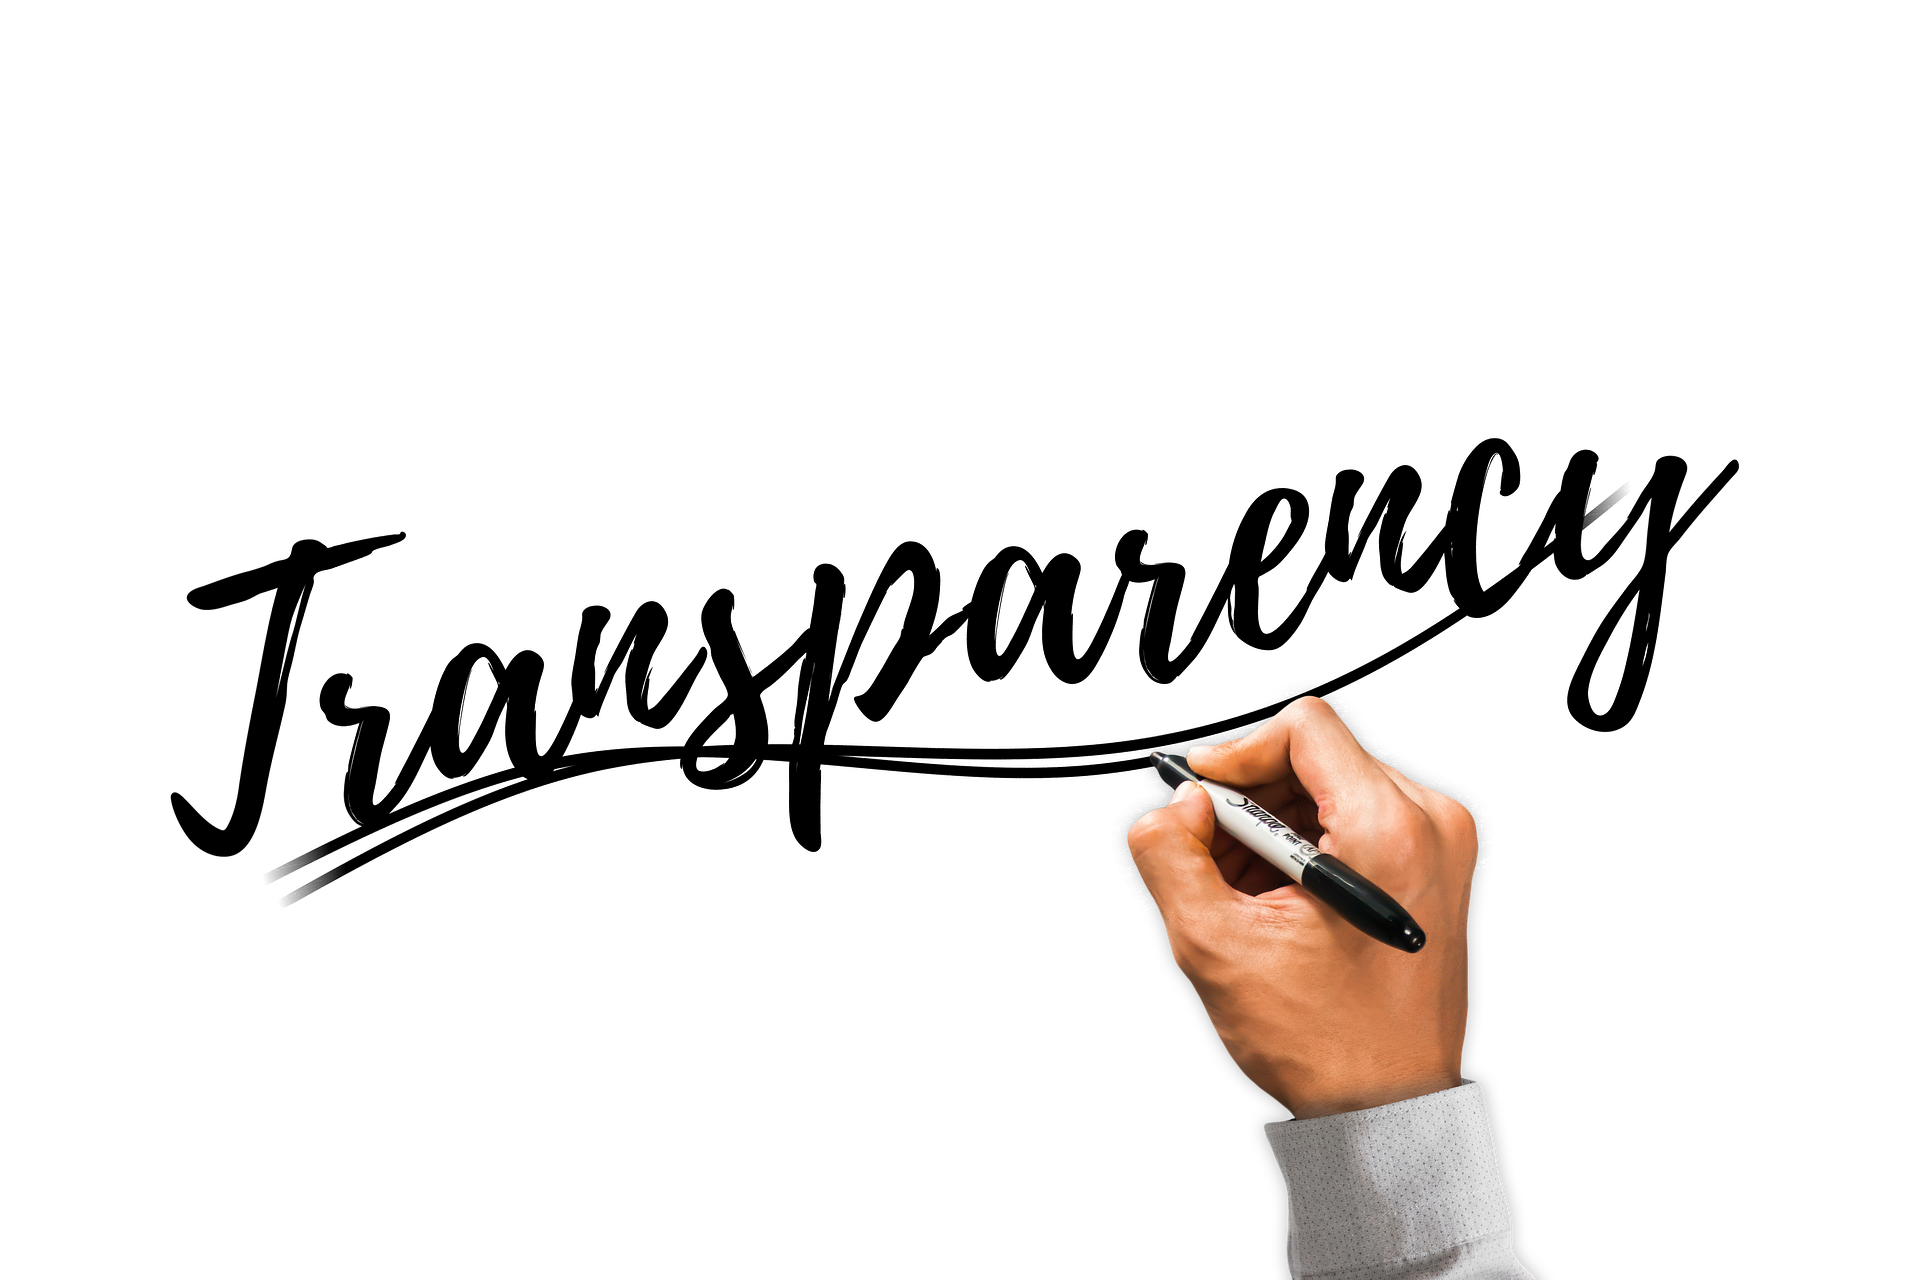 Image of the word Transparency as if it was written on a whiteboard. The is a hand holding a marker made to appear like it has written the word.